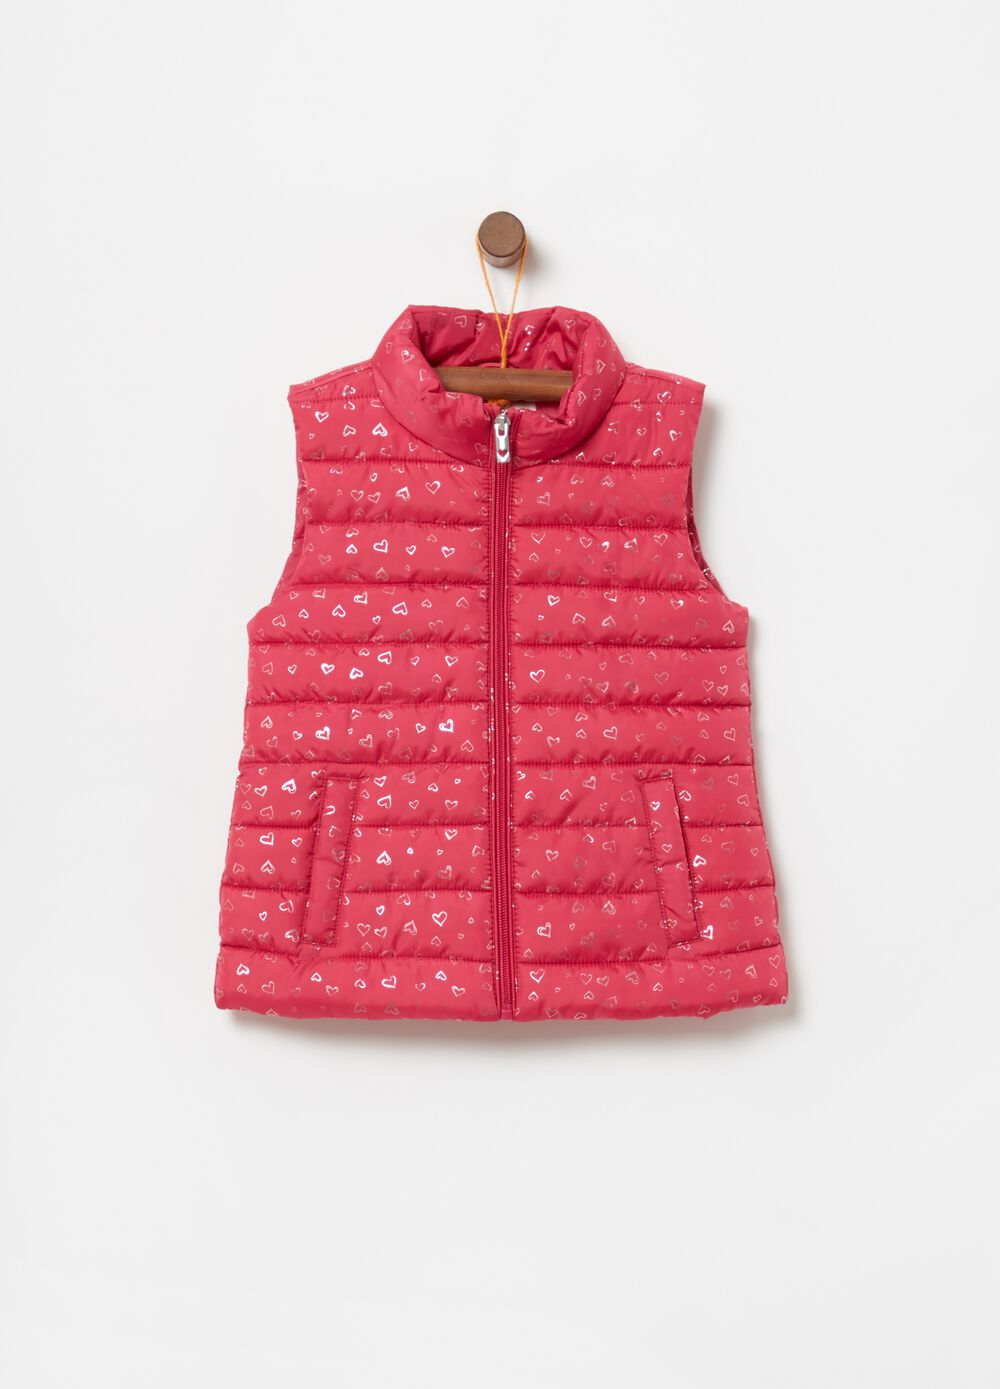 Padded gilet with heart pattern